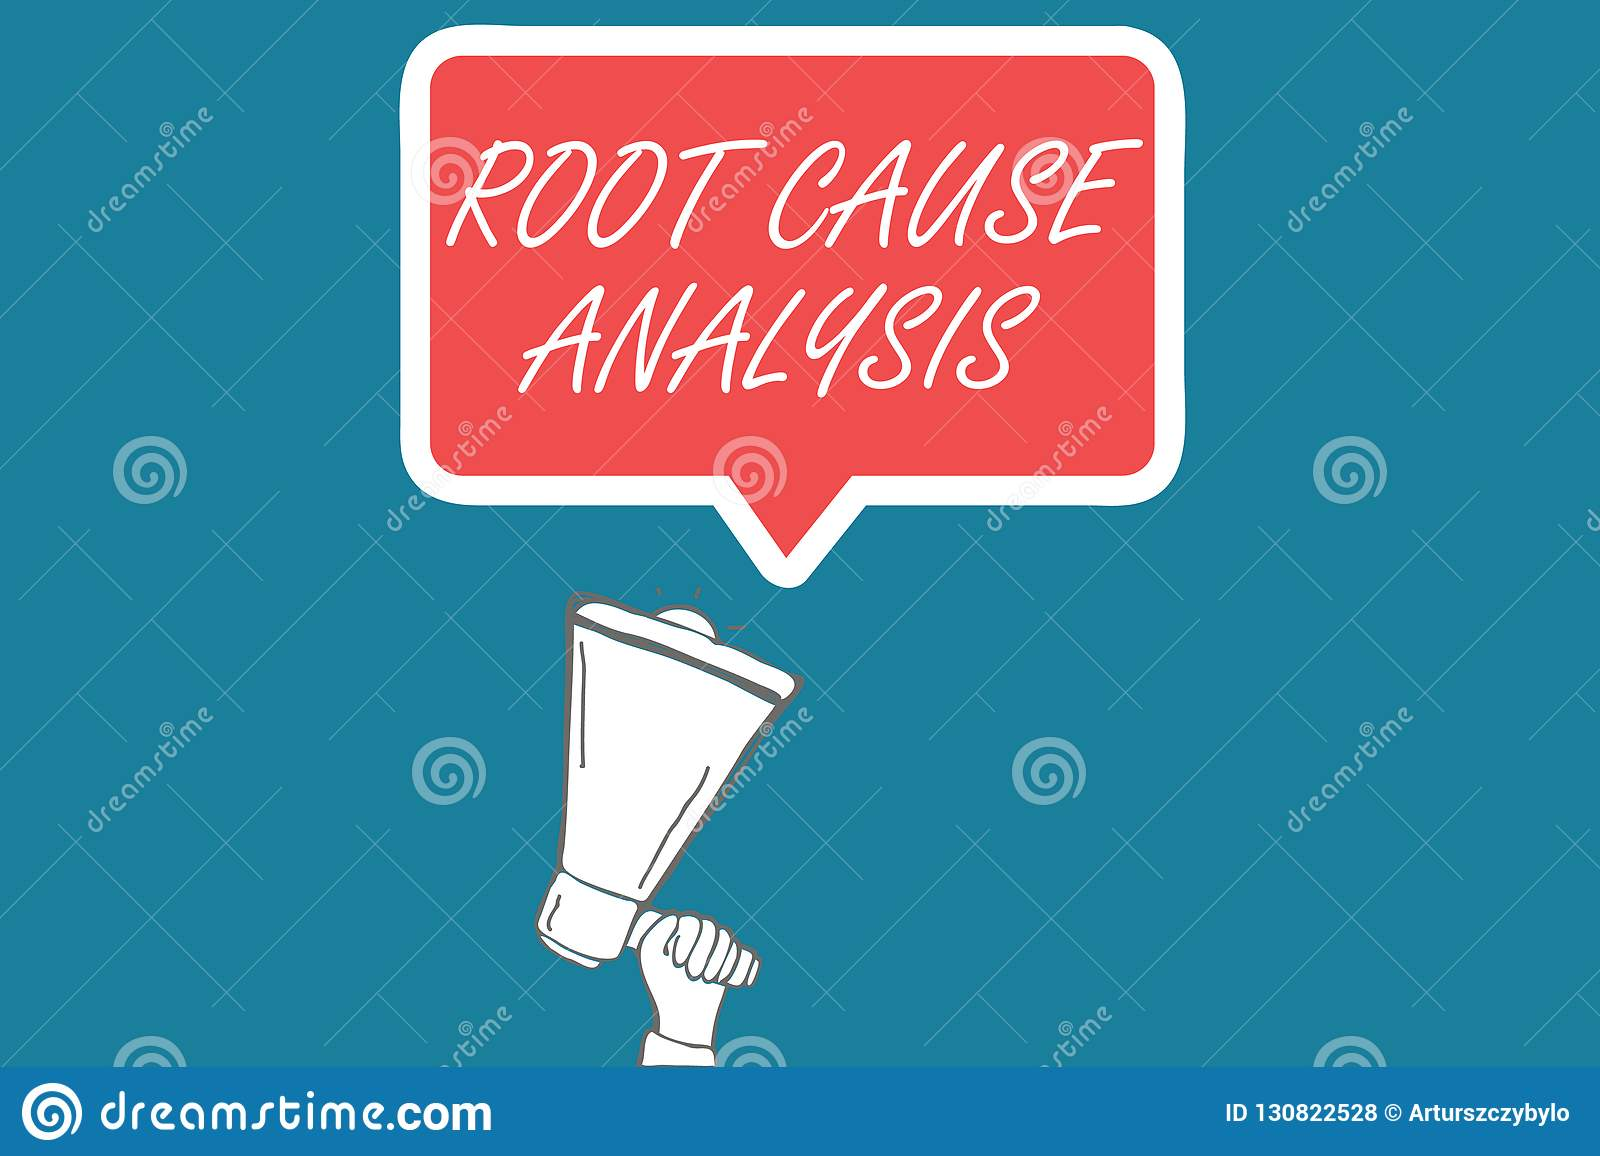 Handwriting Text Root Causeysis Concept Meaning Method Of Problem Solving Identify Fault